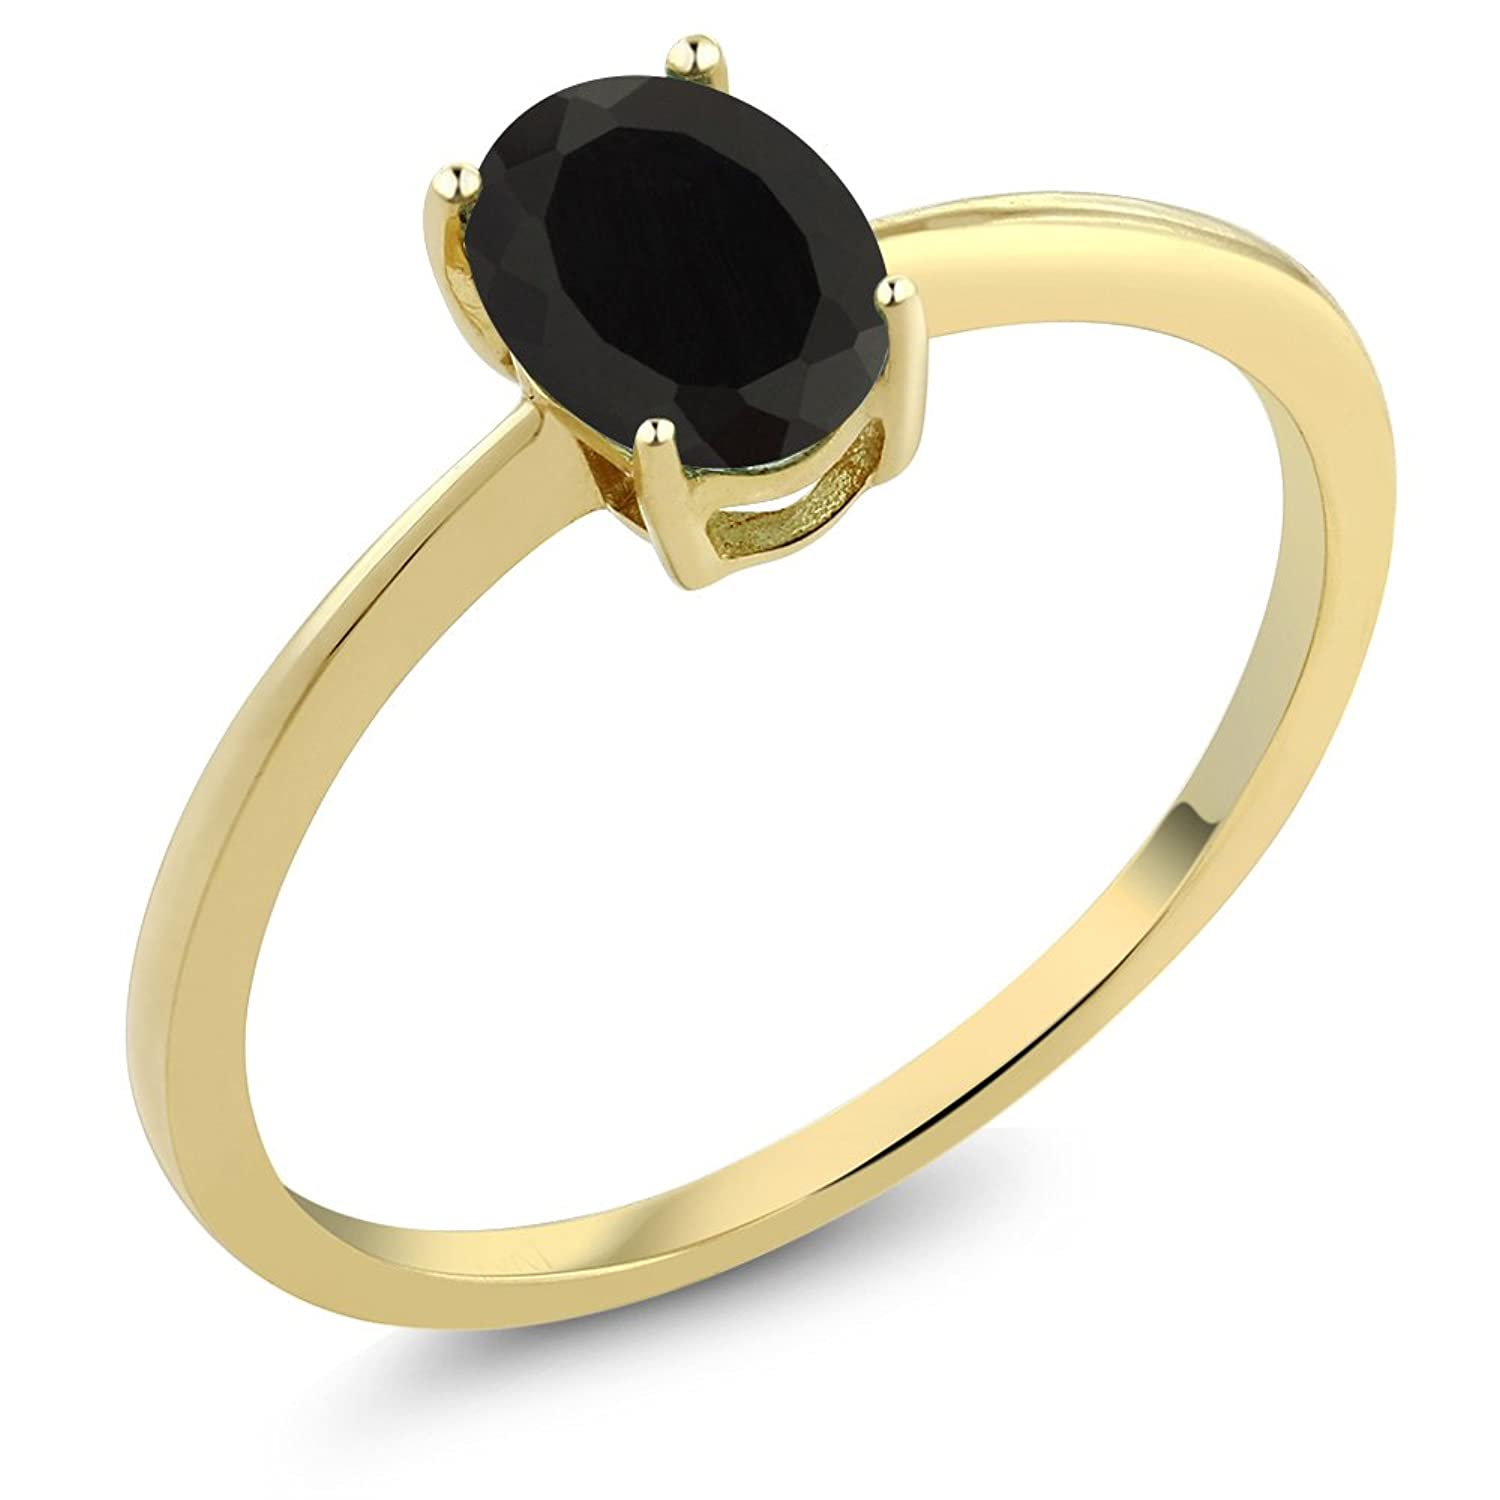 0.80 Ct Oval Black Onyx 10K Yellow Gold Solitaire Engagement Ring (Sizes 5,6,7,8,9)